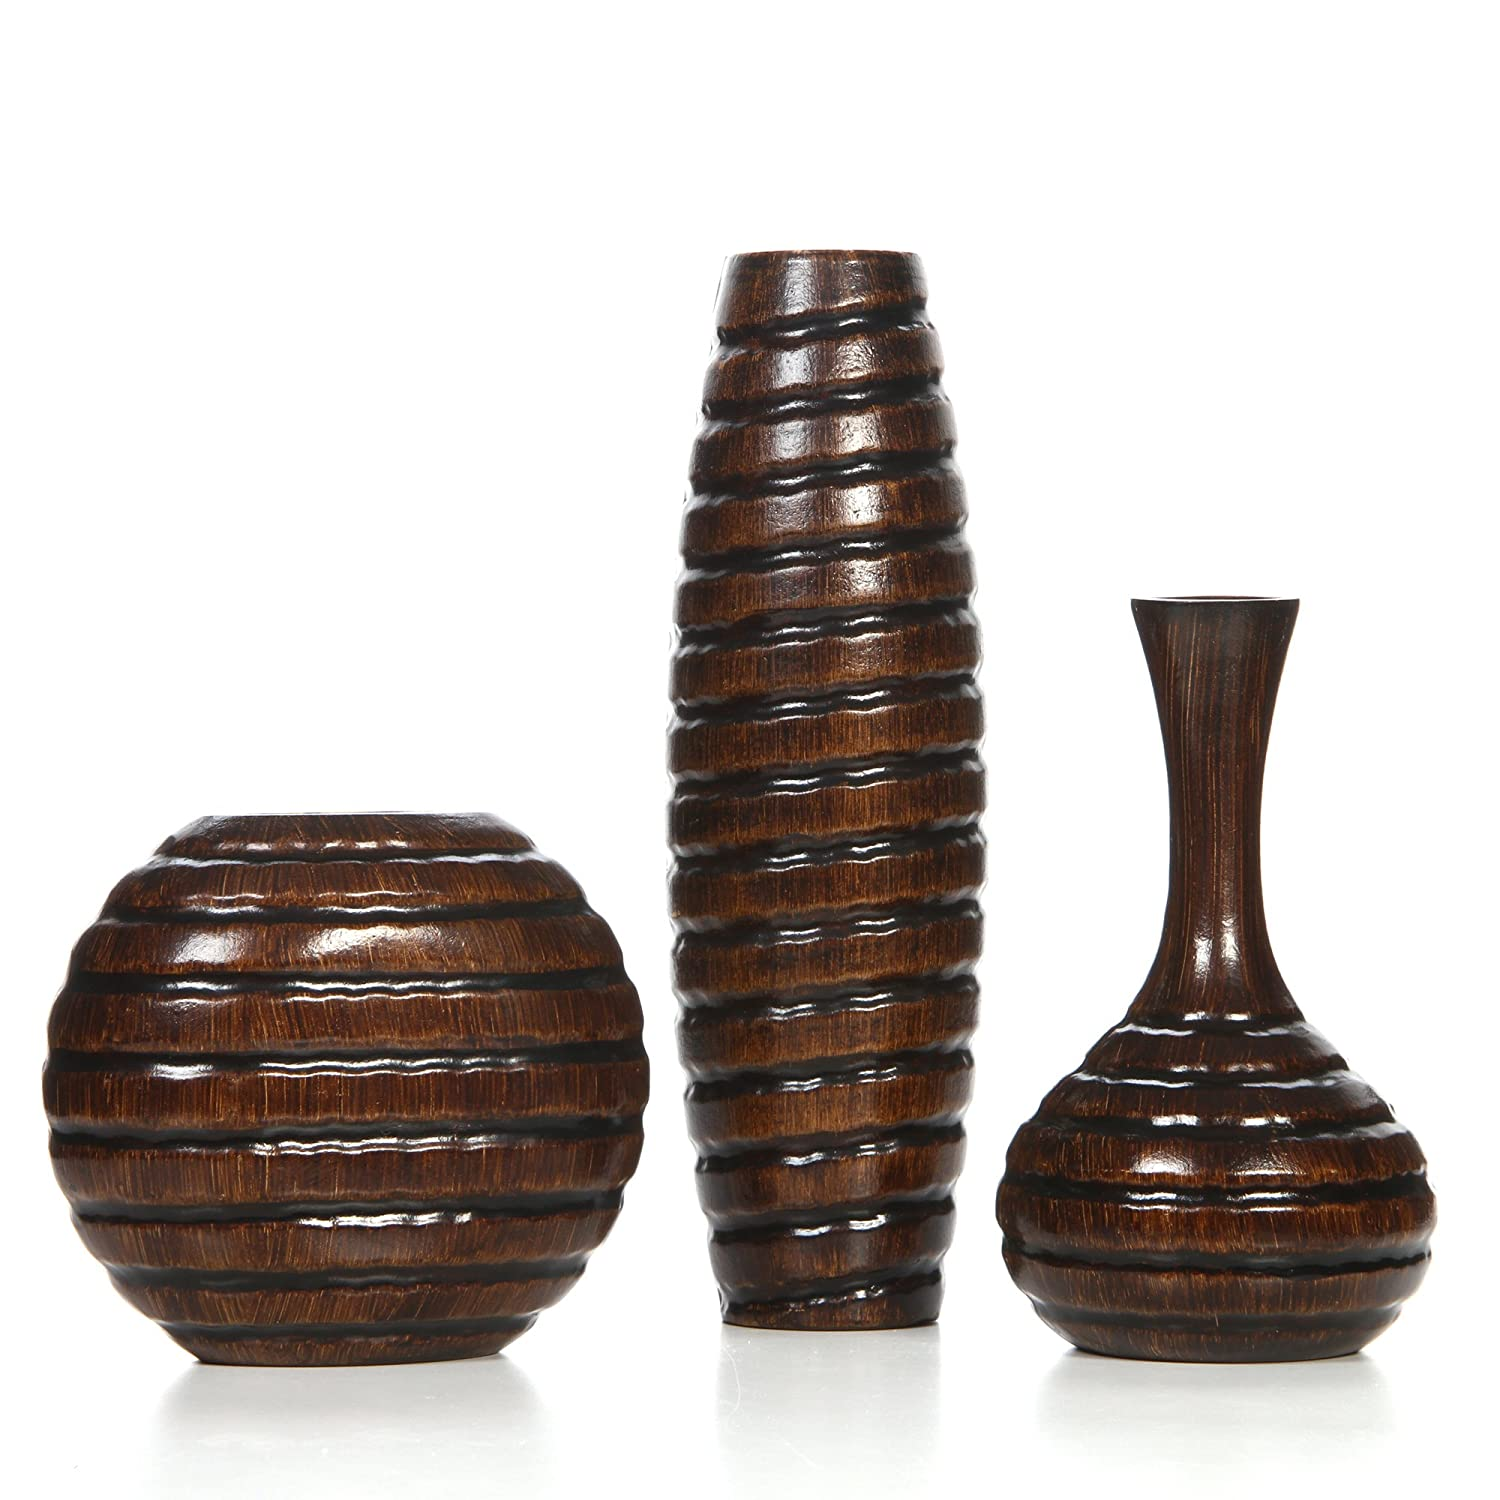 Amazon hosleys set of 3 carved wood vases small 6 medium amazon hosleys set of 3 carved wood vases small 6 medium 8 and tall 12 high ideal gift for weeding and use for home office decor fireplace reviewsmspy